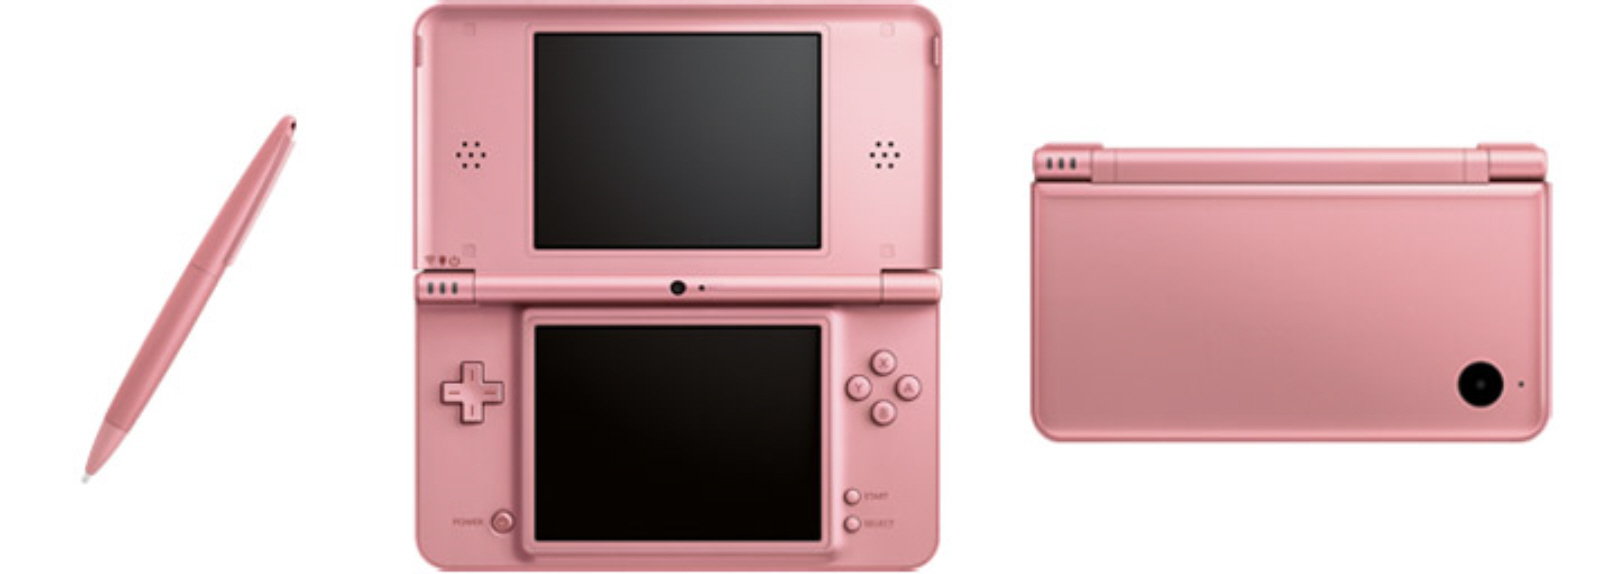 pink dsi xl called metallic rose pic shows open closed. Black Bedroom Furniture Sets. Home Design Ideas